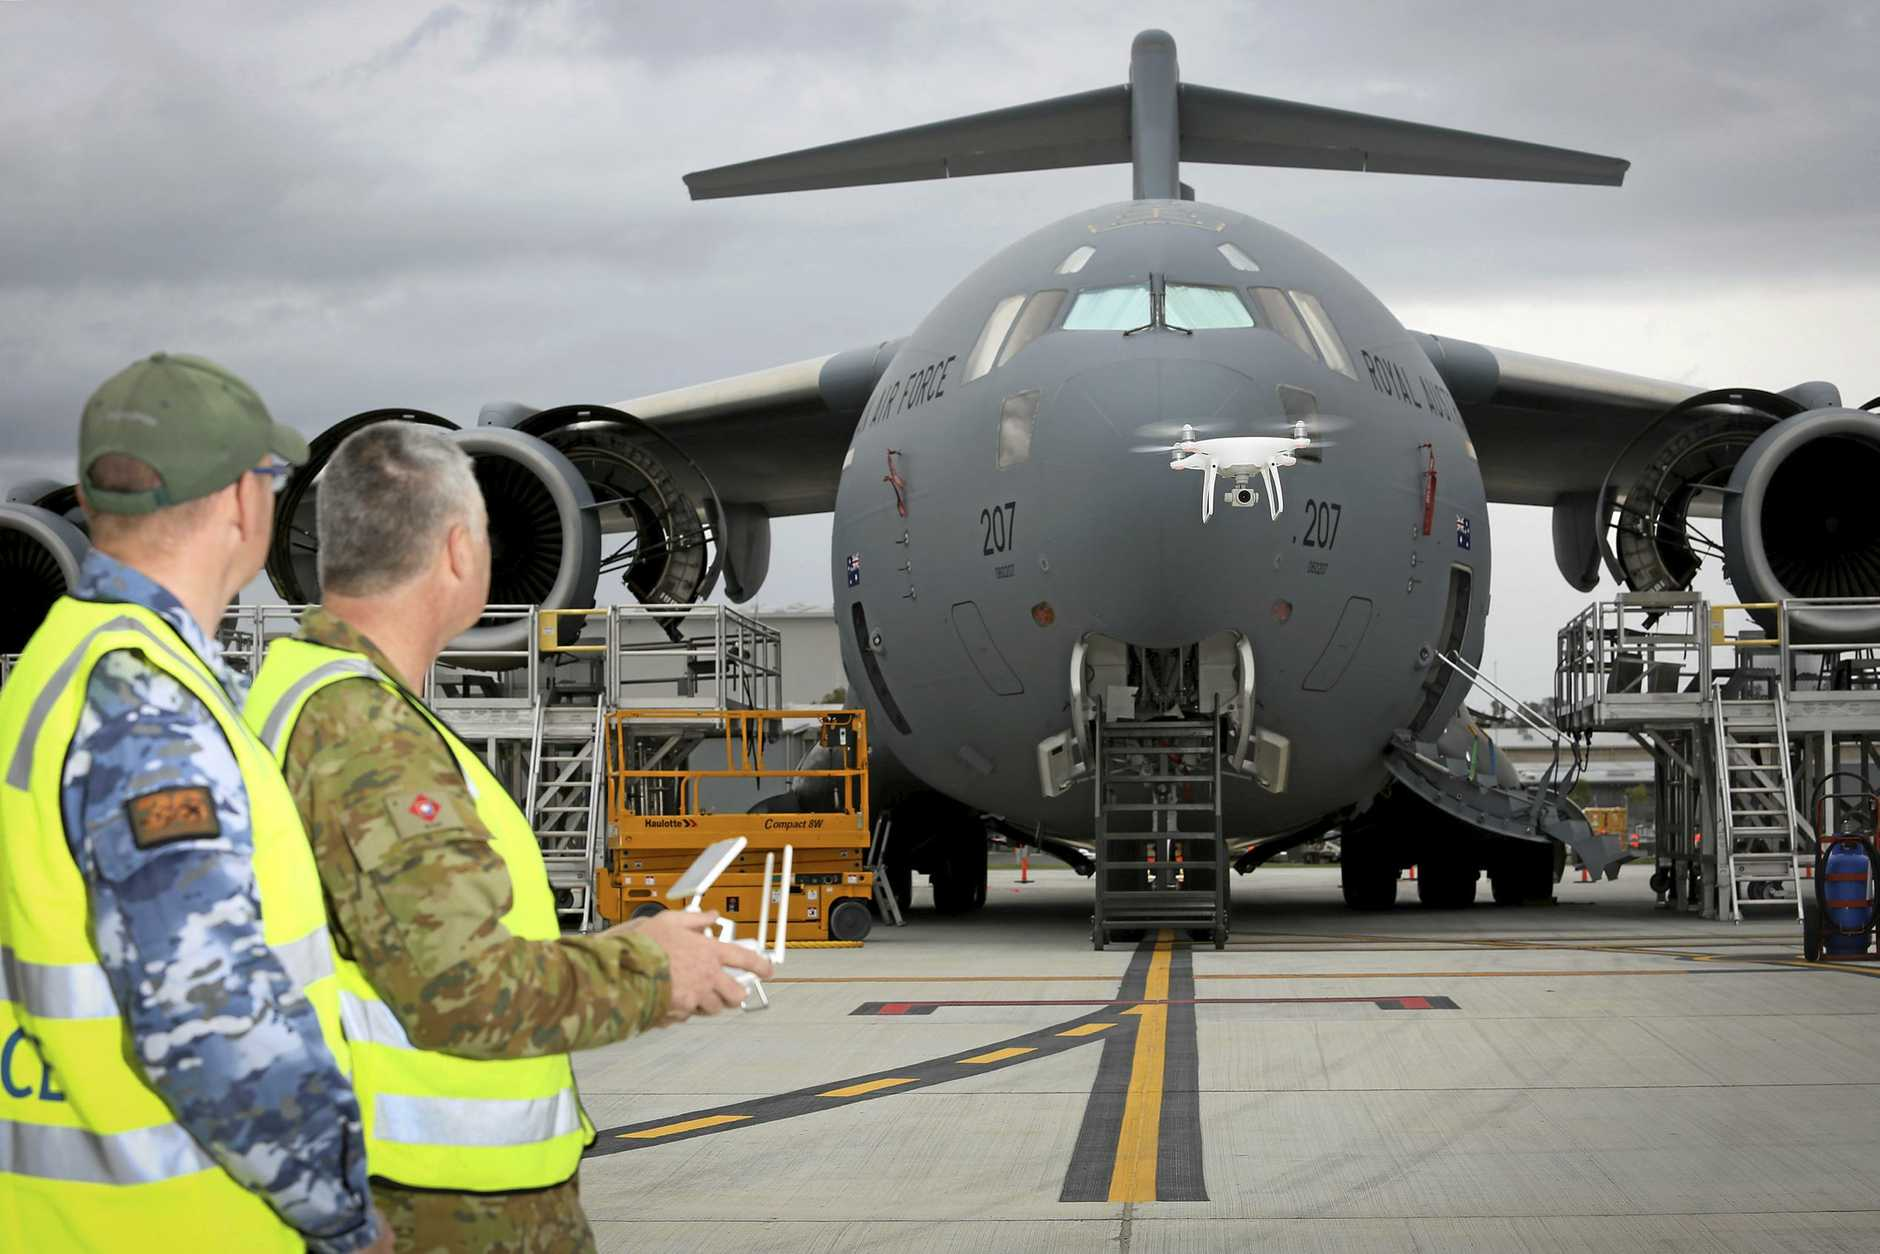 Australian Army soldier, Sergeant Andrew Whitelaw, from 16 Air Land Regiment and Corporal Kelvin Green, Aircraft Surface Finisher at Royal Australian Air Force No.36 Squadron, launch a drone to inspect the condition of paint on the upper surfaces of a C-17A Globemaster on the flightline at RAAF Base Amberley.